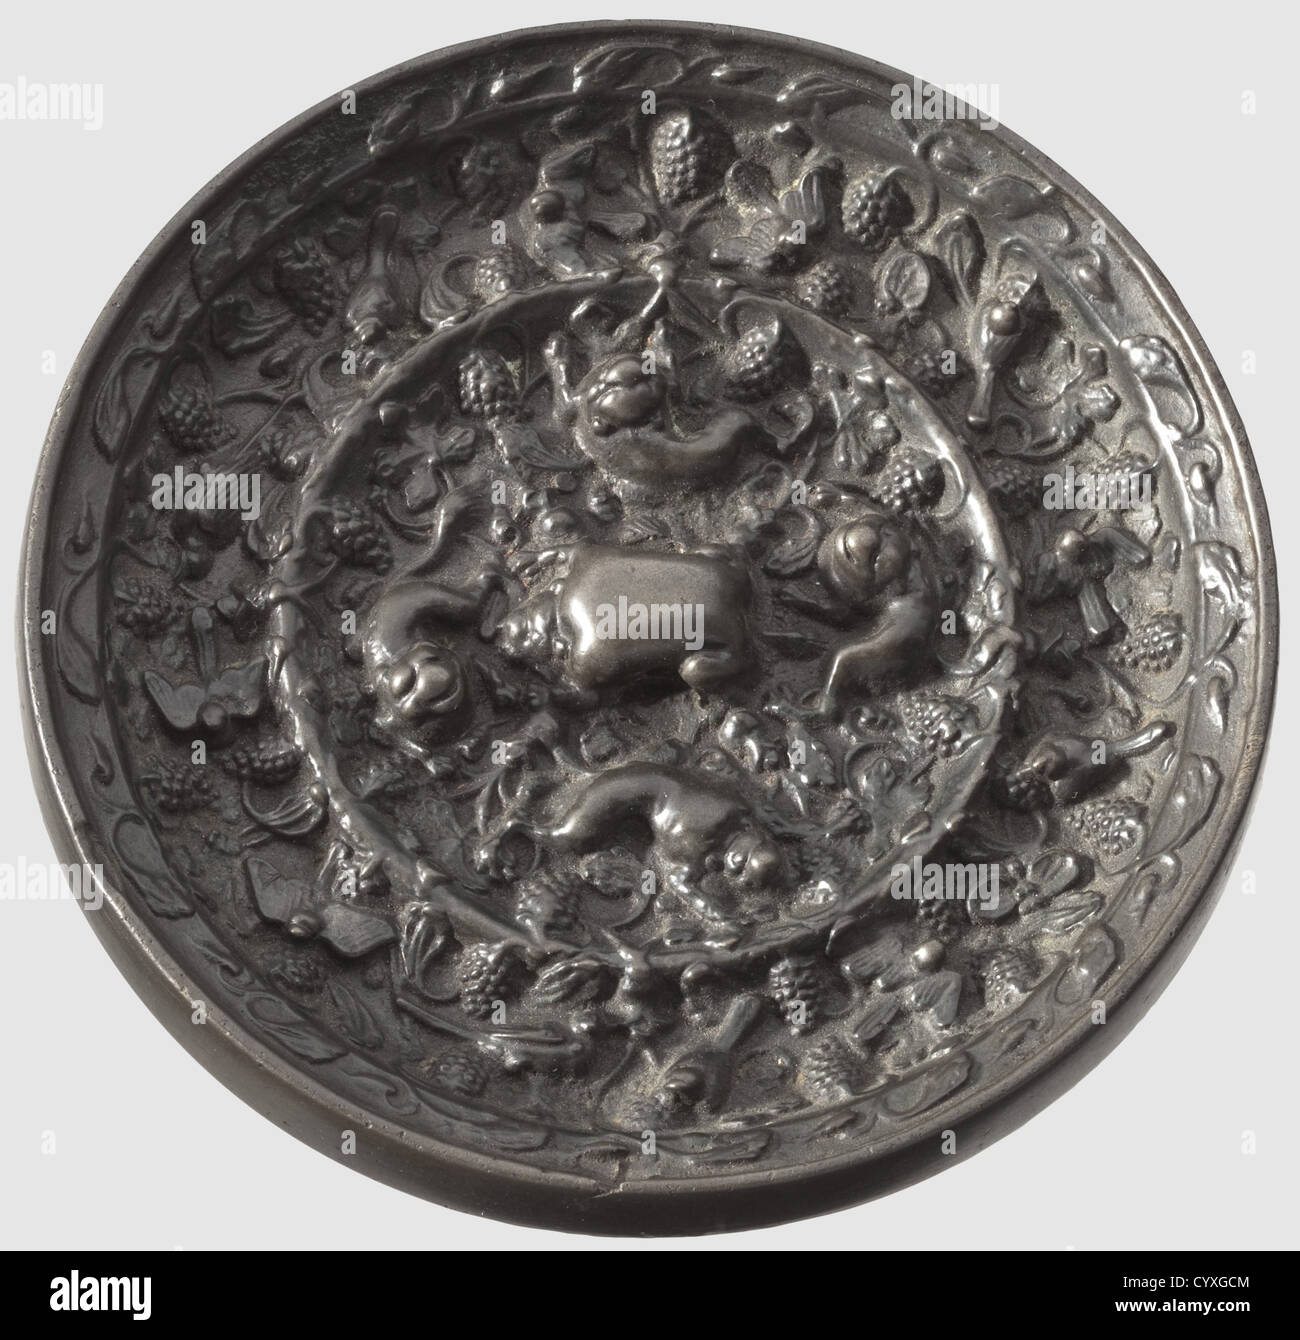 A Chinese hand mirror, Tang dynasty 7. / 8. century Bronze with fine age patina. Finely polished even mirrorside. - Stock Image